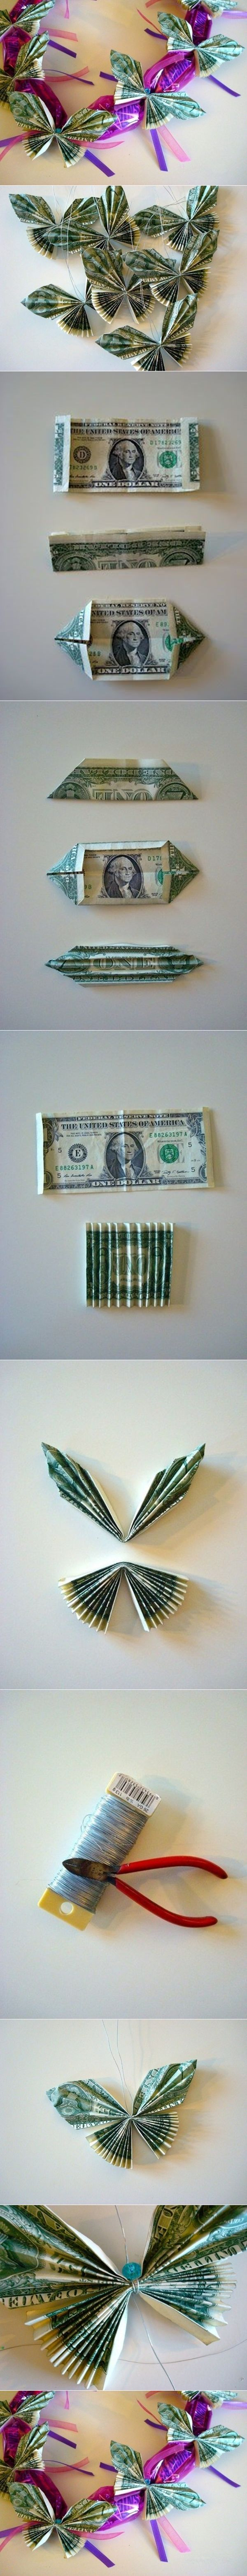 I would use regular paper